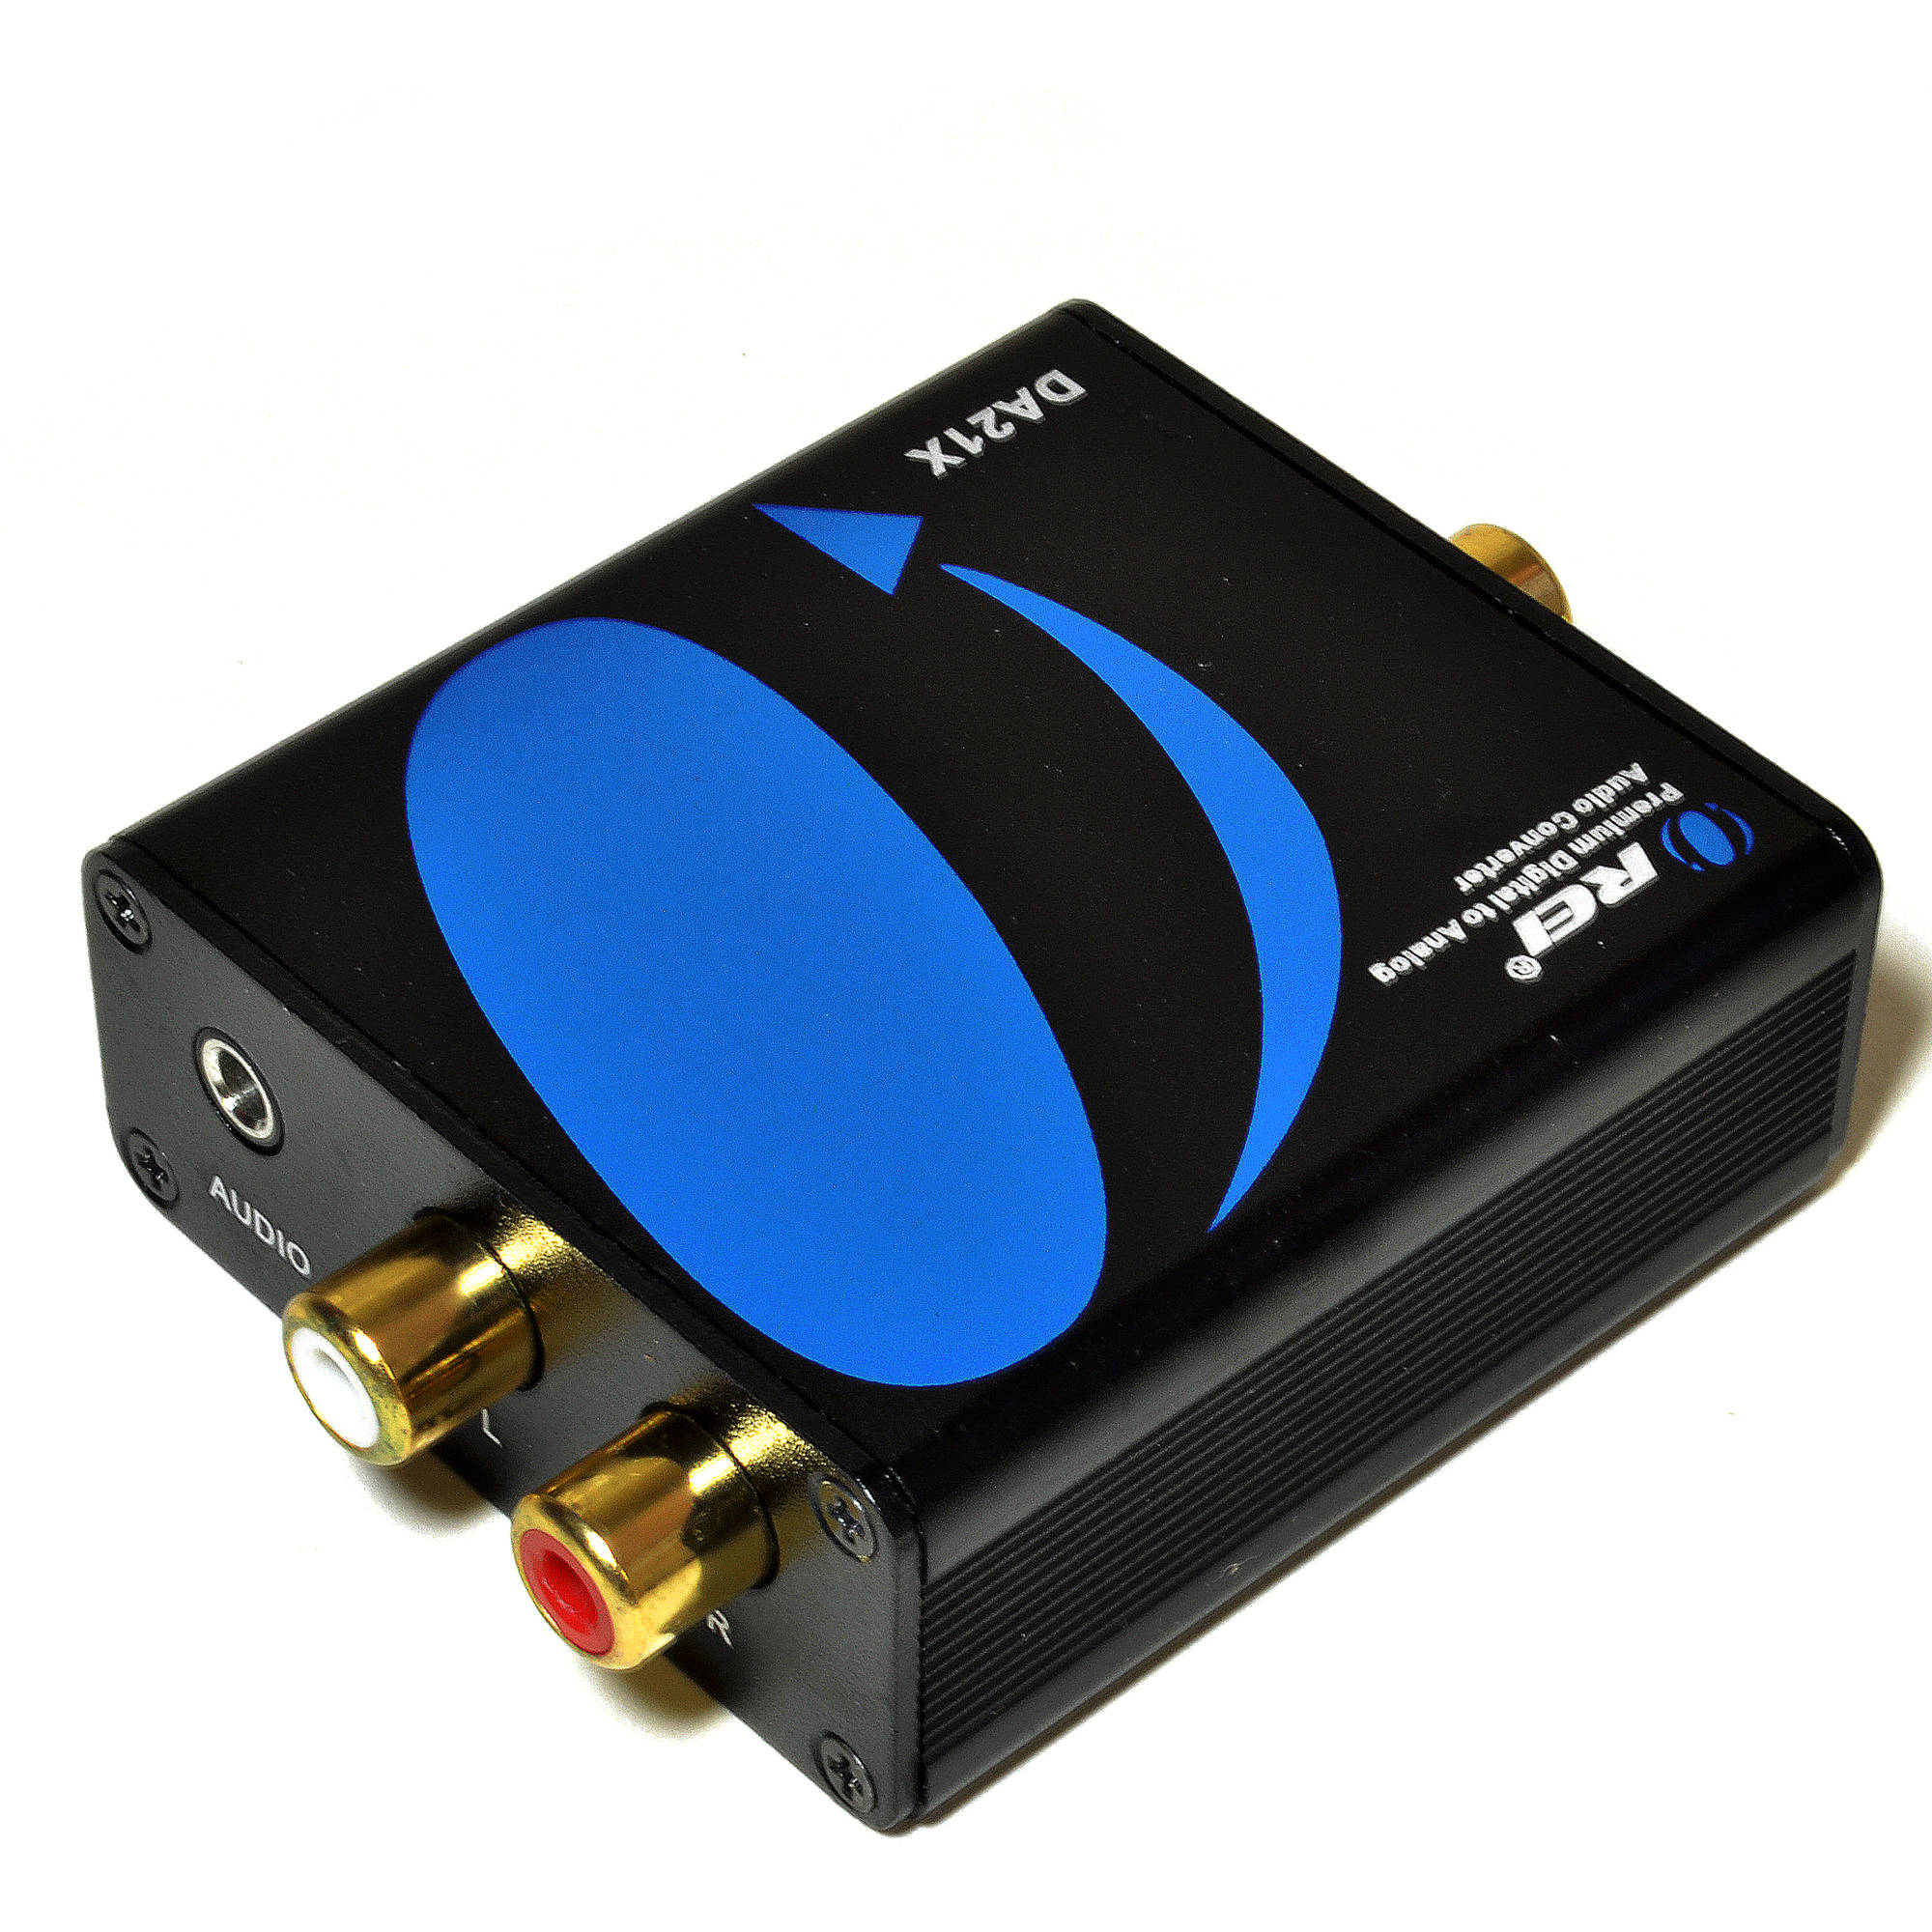 Orei DA21X Premium Optical SPDIF/Coaxial Digital to RCA L/R Analog Audio Converter with 3.5mm Jack